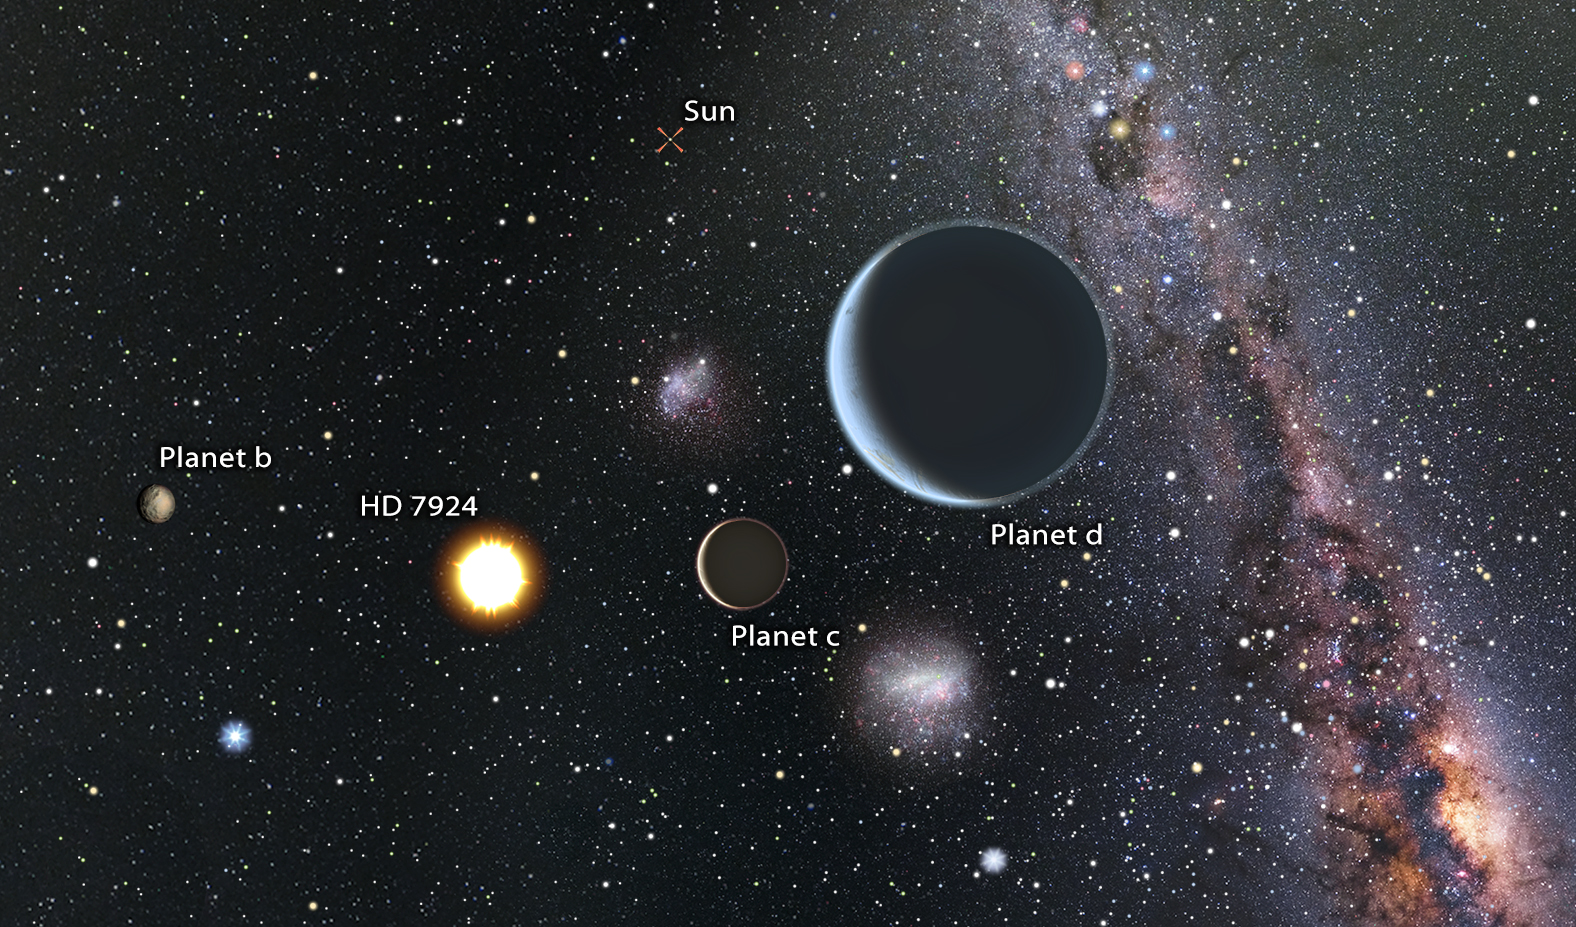 New 'Super Earth' Exoplanets Spotted Around Nearby Star